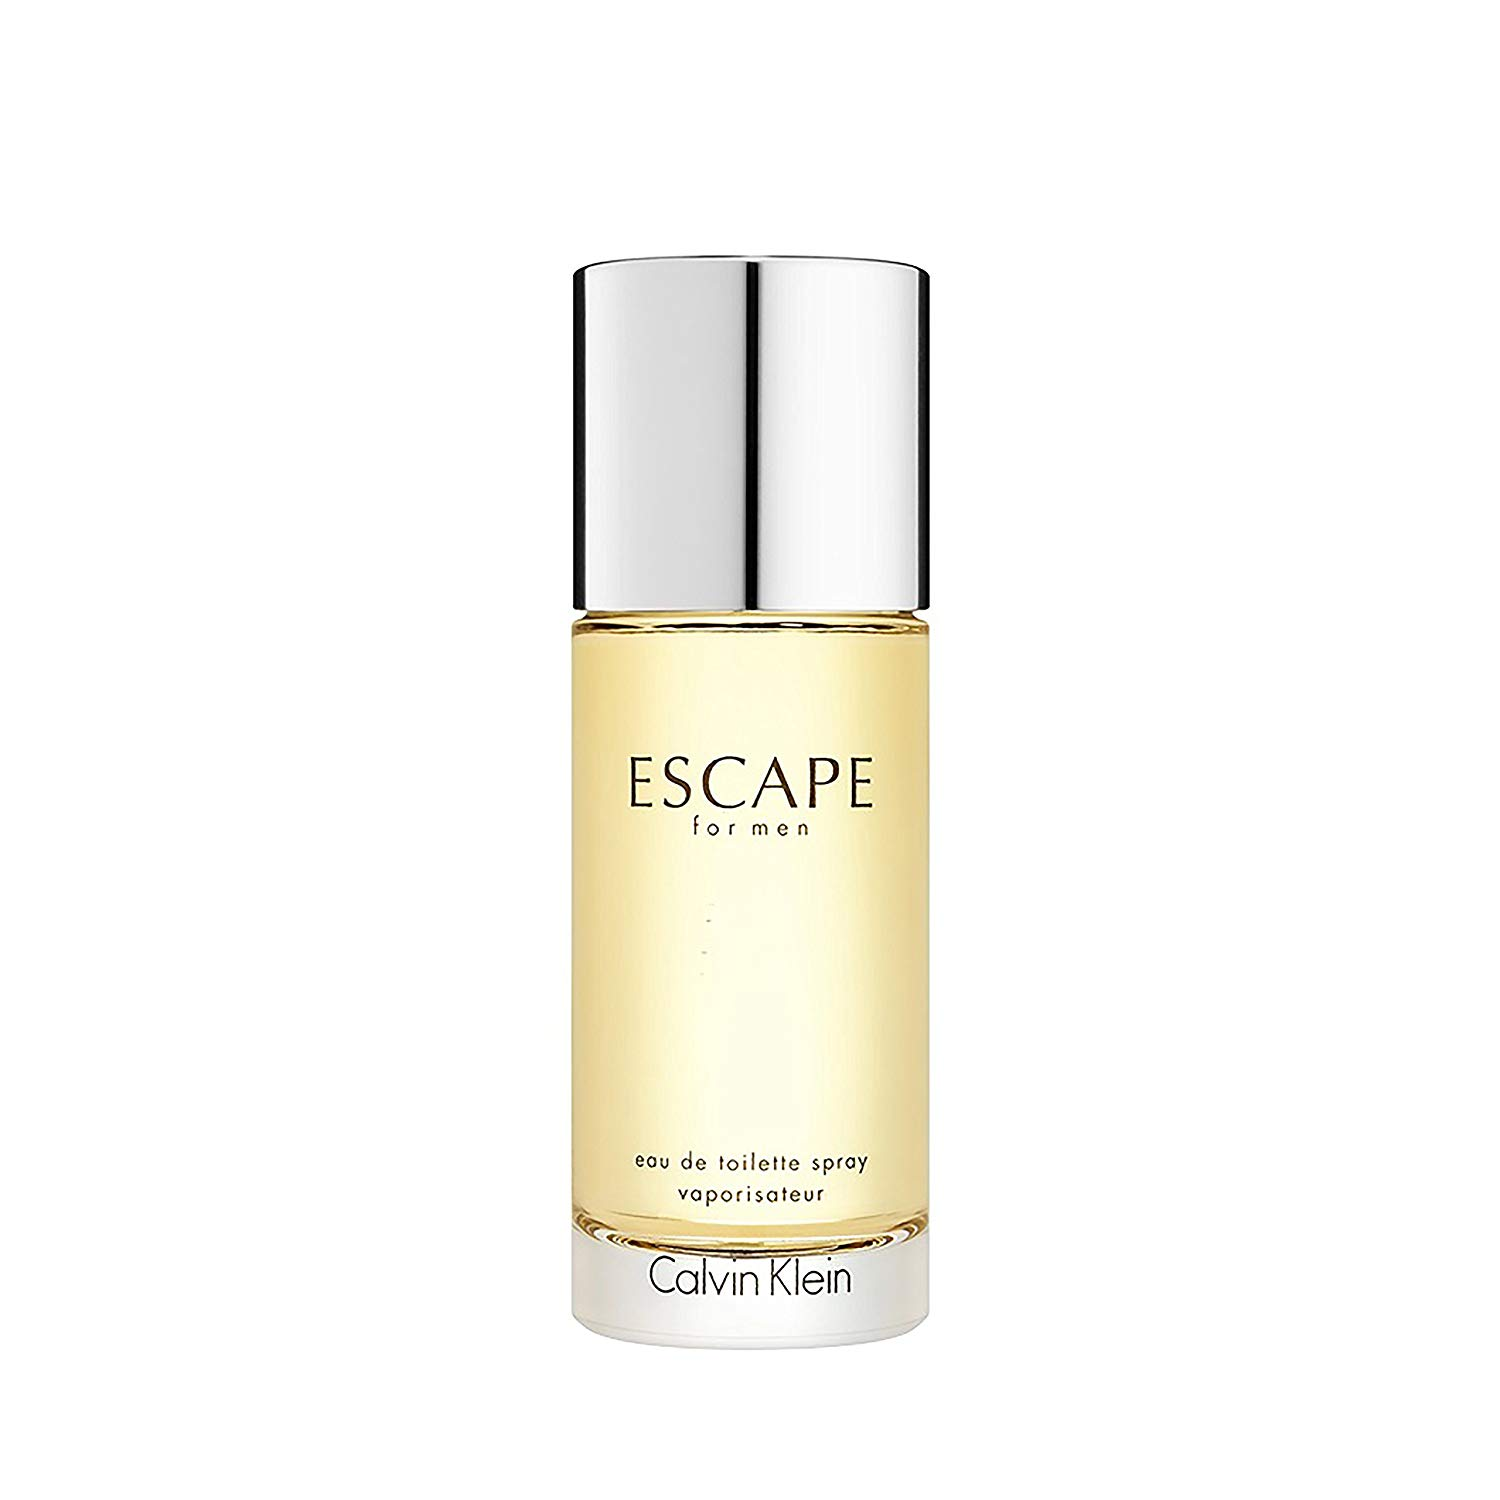 Calvin Klein Escape for Men Eau De Toilette, 100 Ml for £24.00